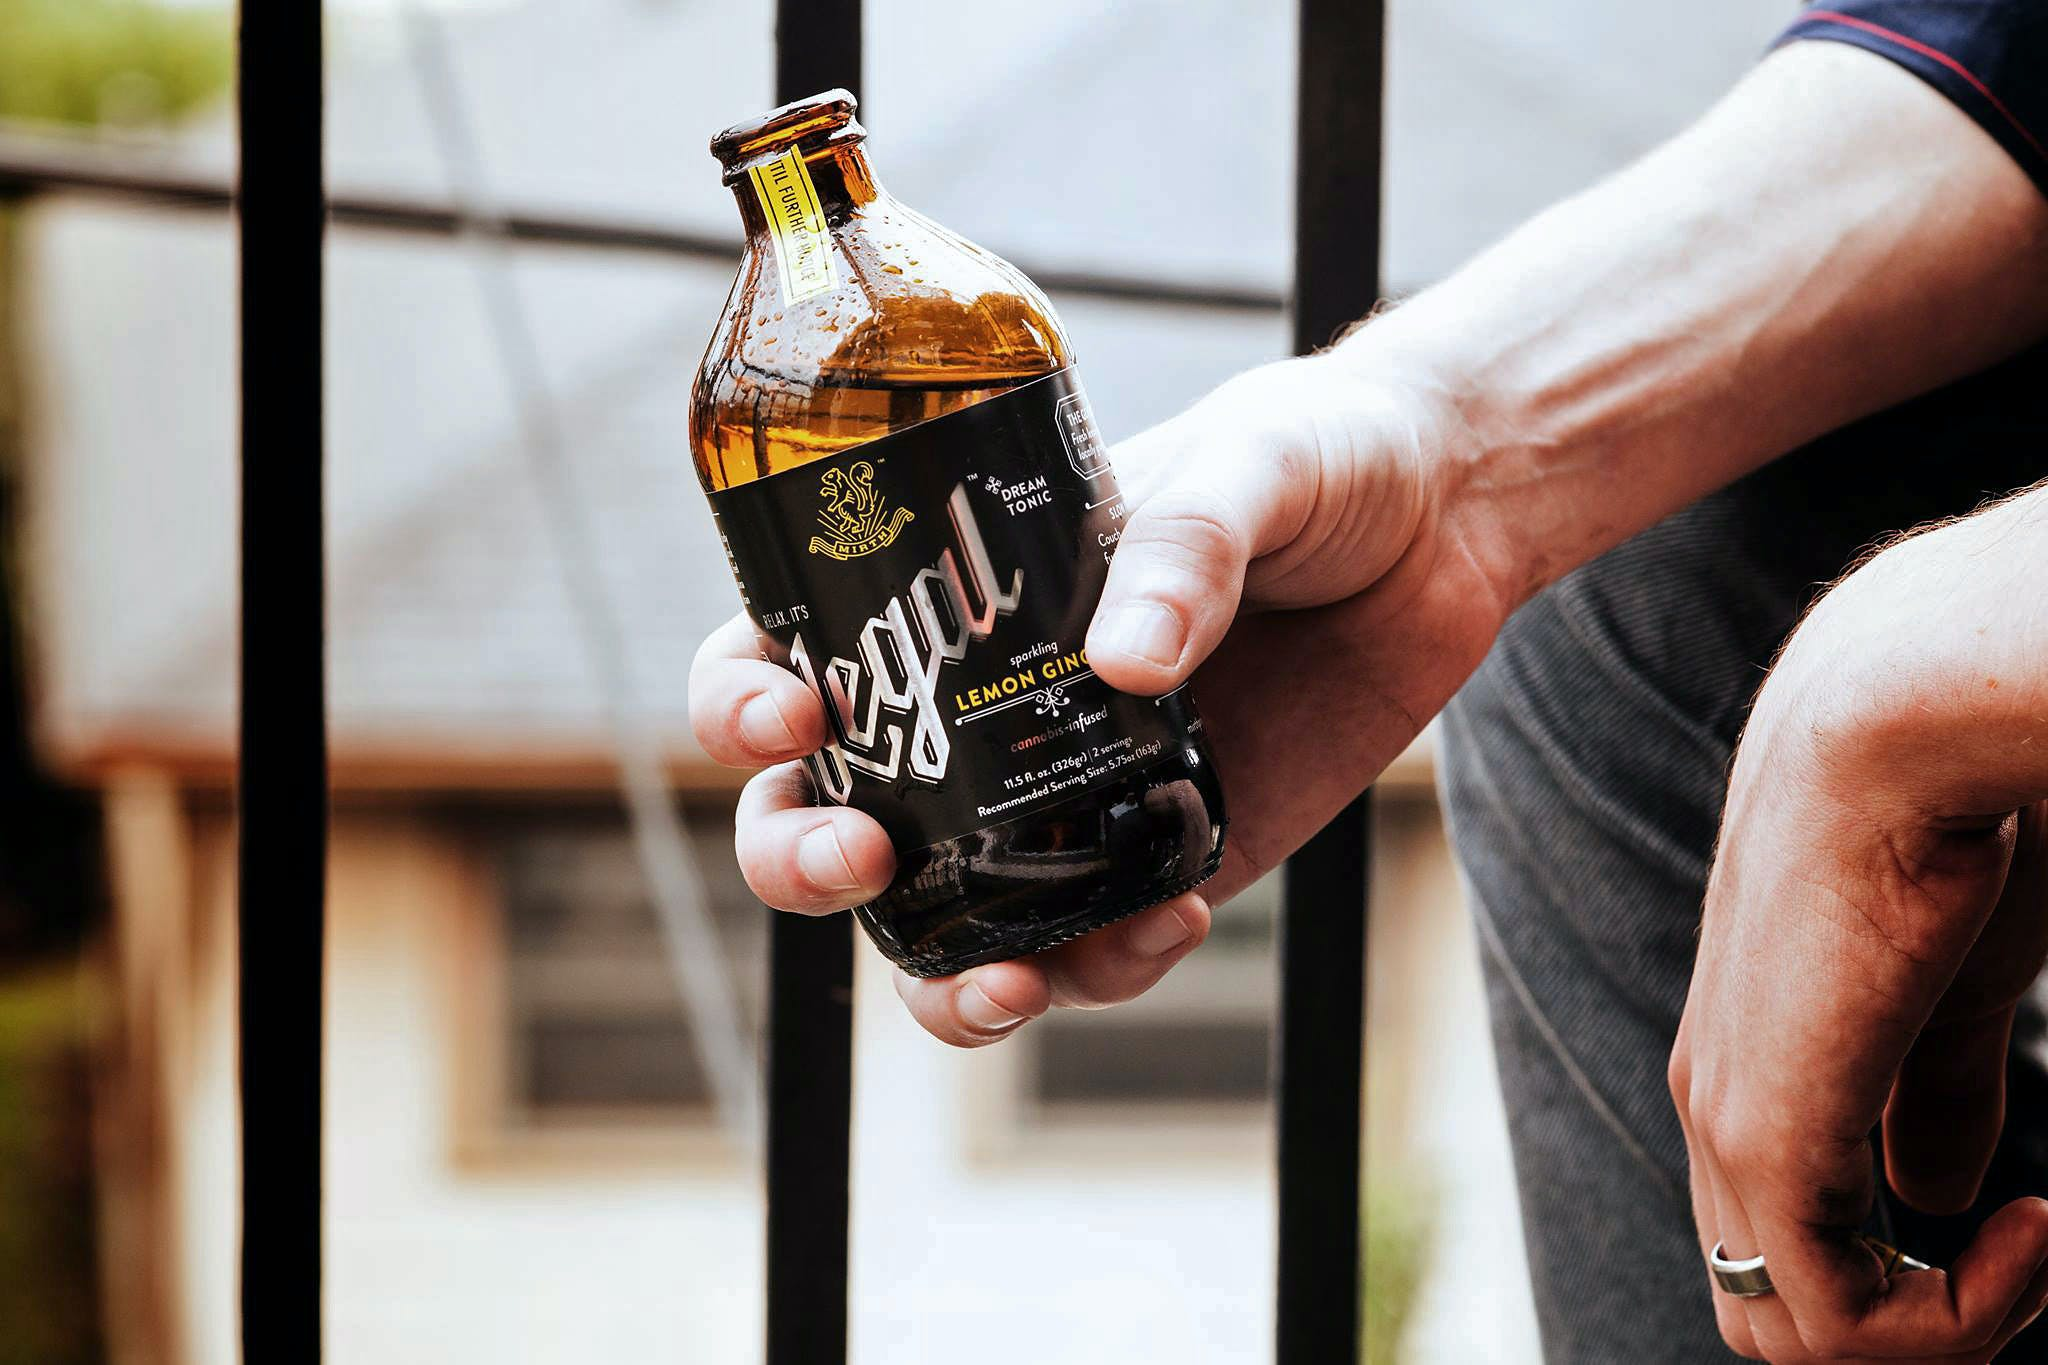 Drinkable Weed Likely to Triumph Traditional Smoking1 This Is How California Is Destroying $350 Million Worth Of Weed